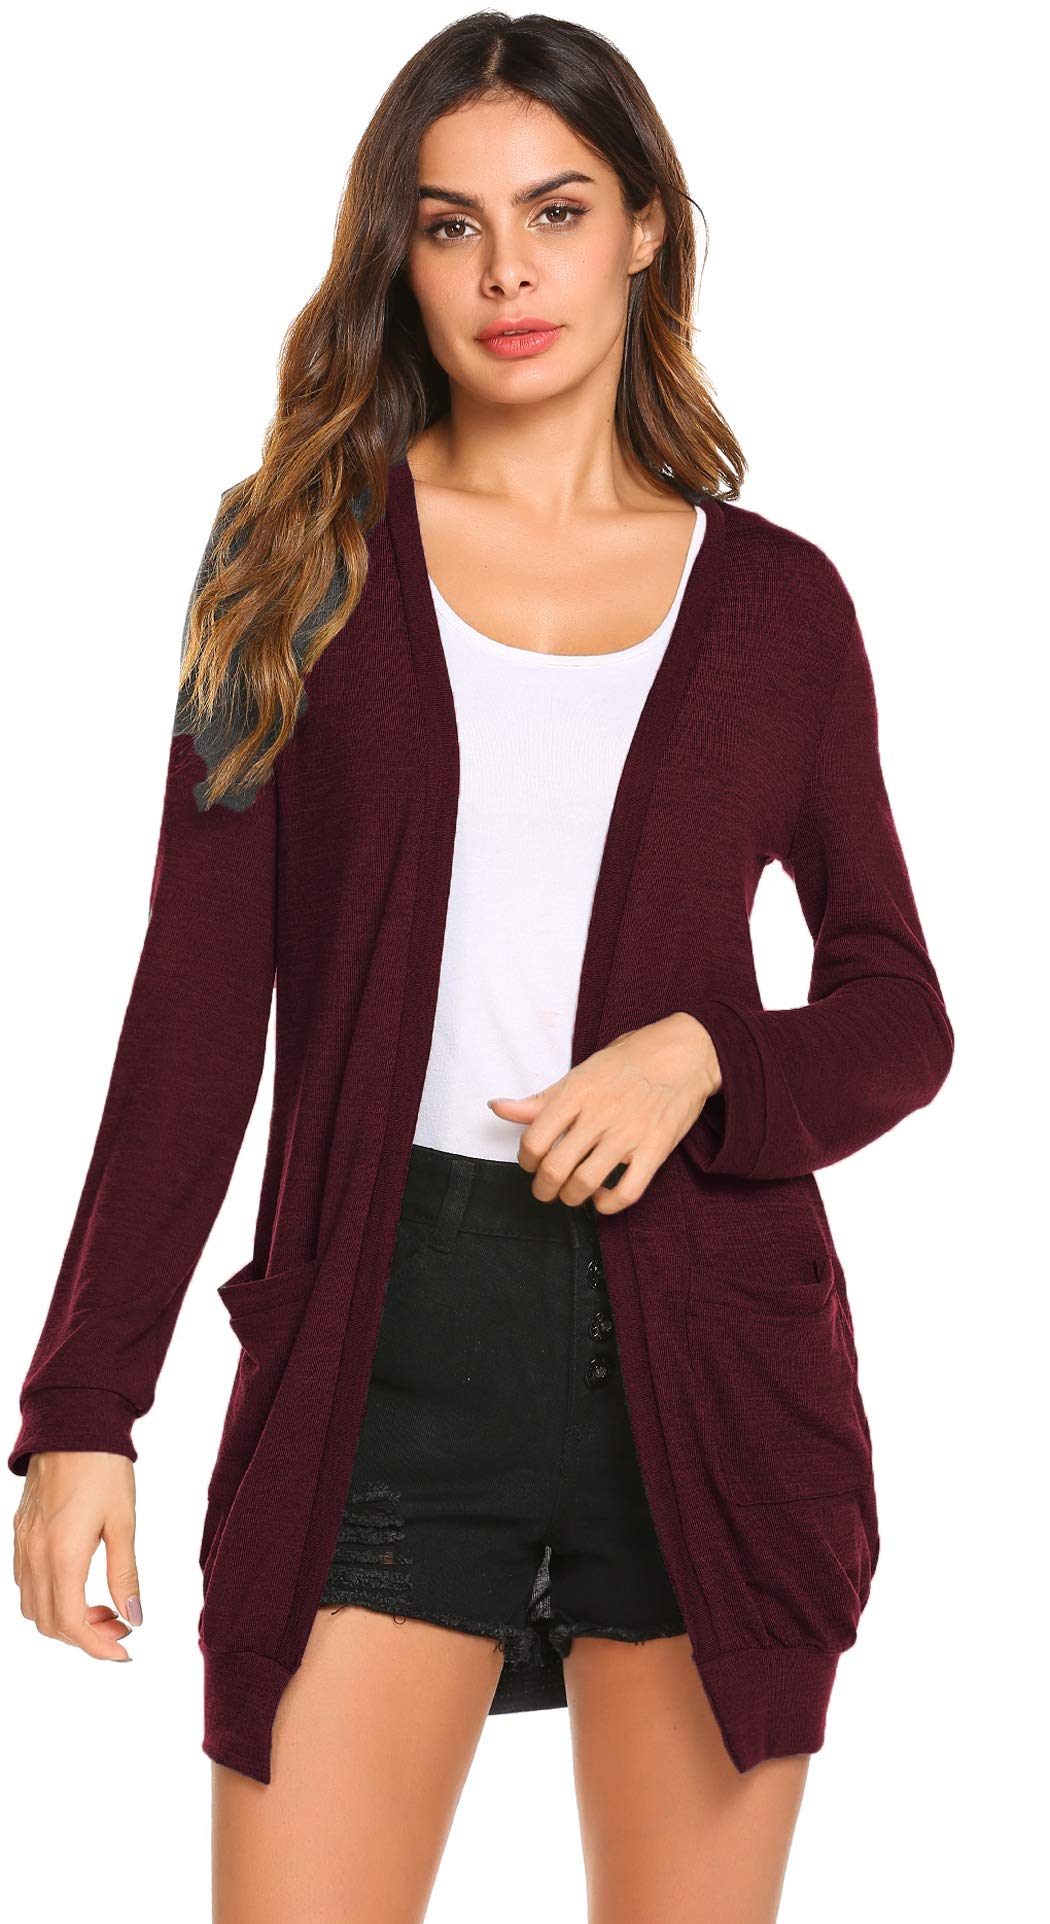 SimpleFun Womens Lightweight Open Front Knitted Cardigans Long Drape Knit Sweaters with Pockets (Wine Red,L)